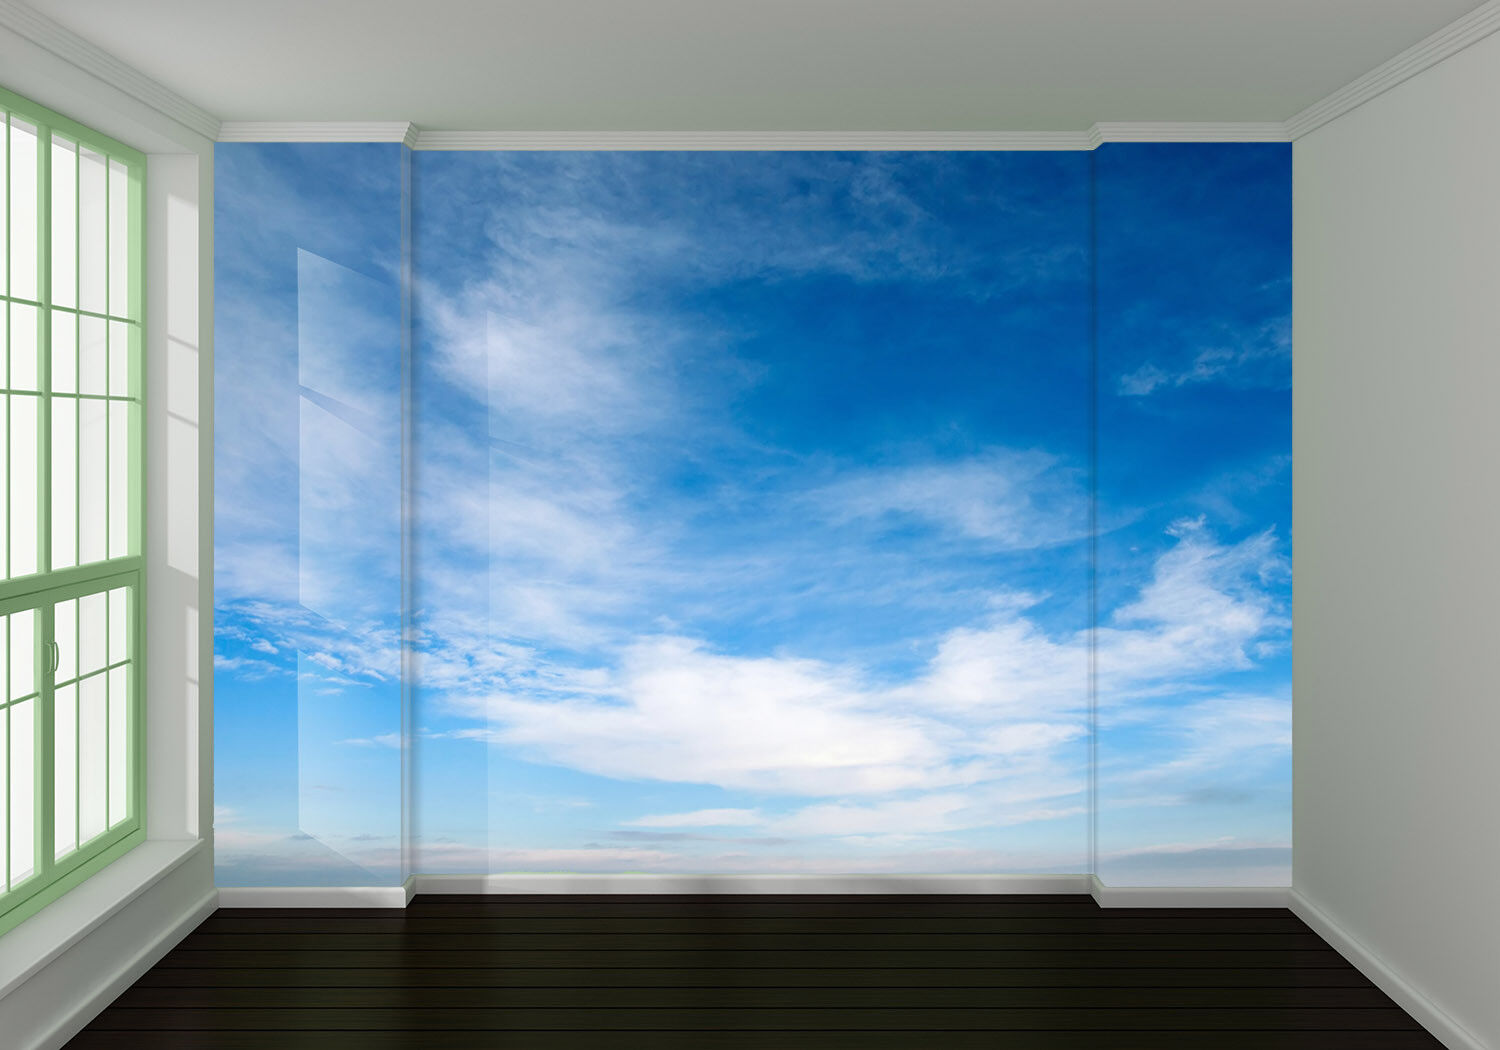 3D Bule Sky 4134 Wallpaper Murals Wall Print Wallpaper Mural AJ WALL UK Carly